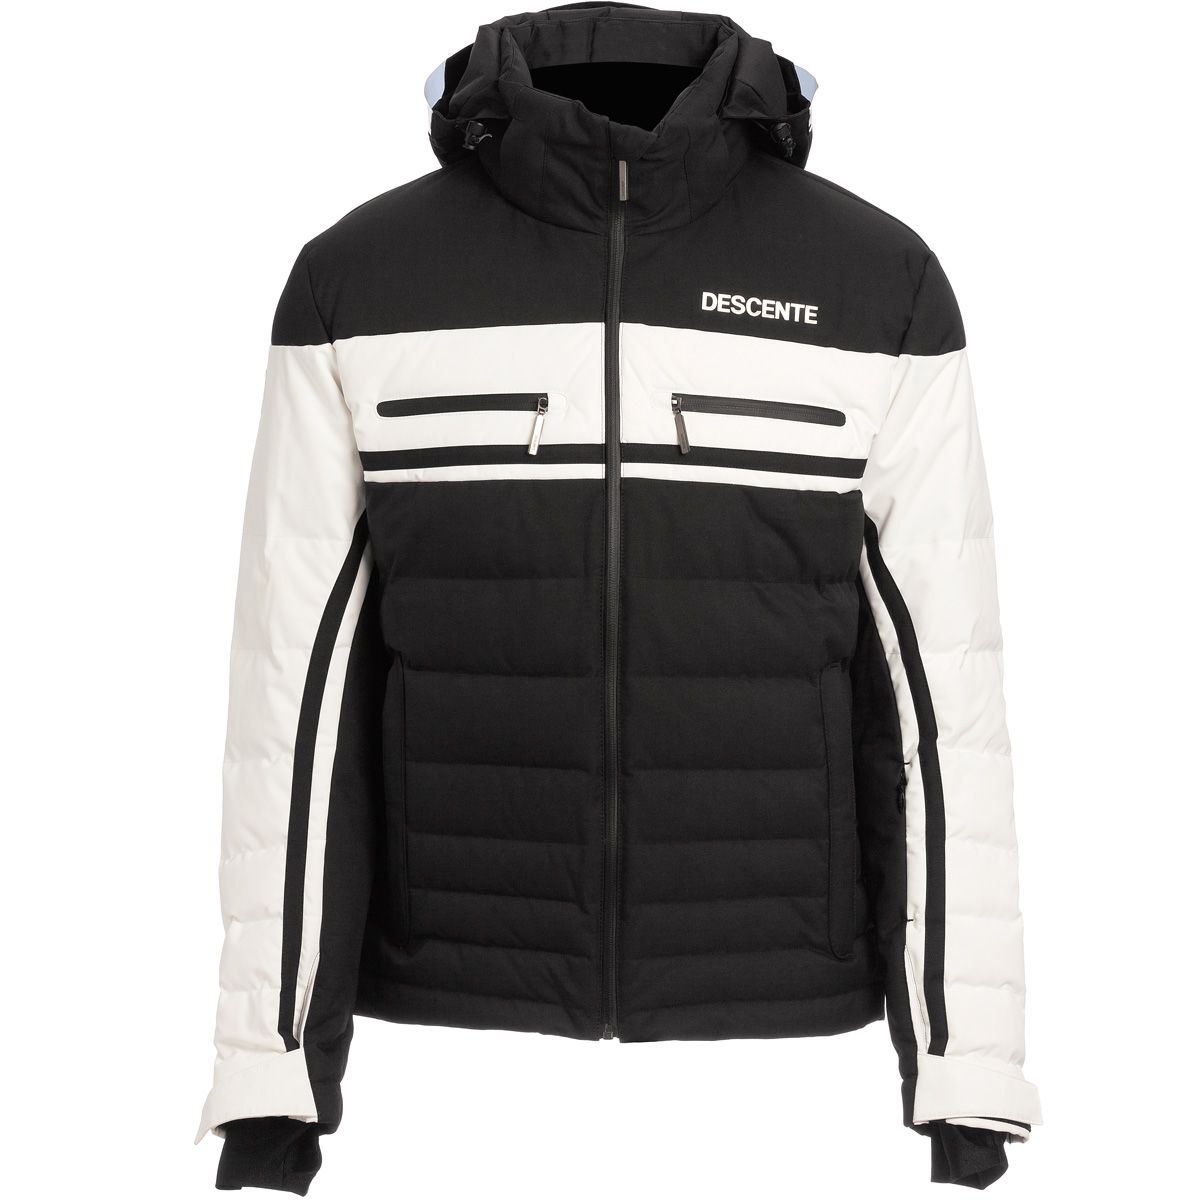 Descente Men Editor Jacket black super white Síelés a05a866698